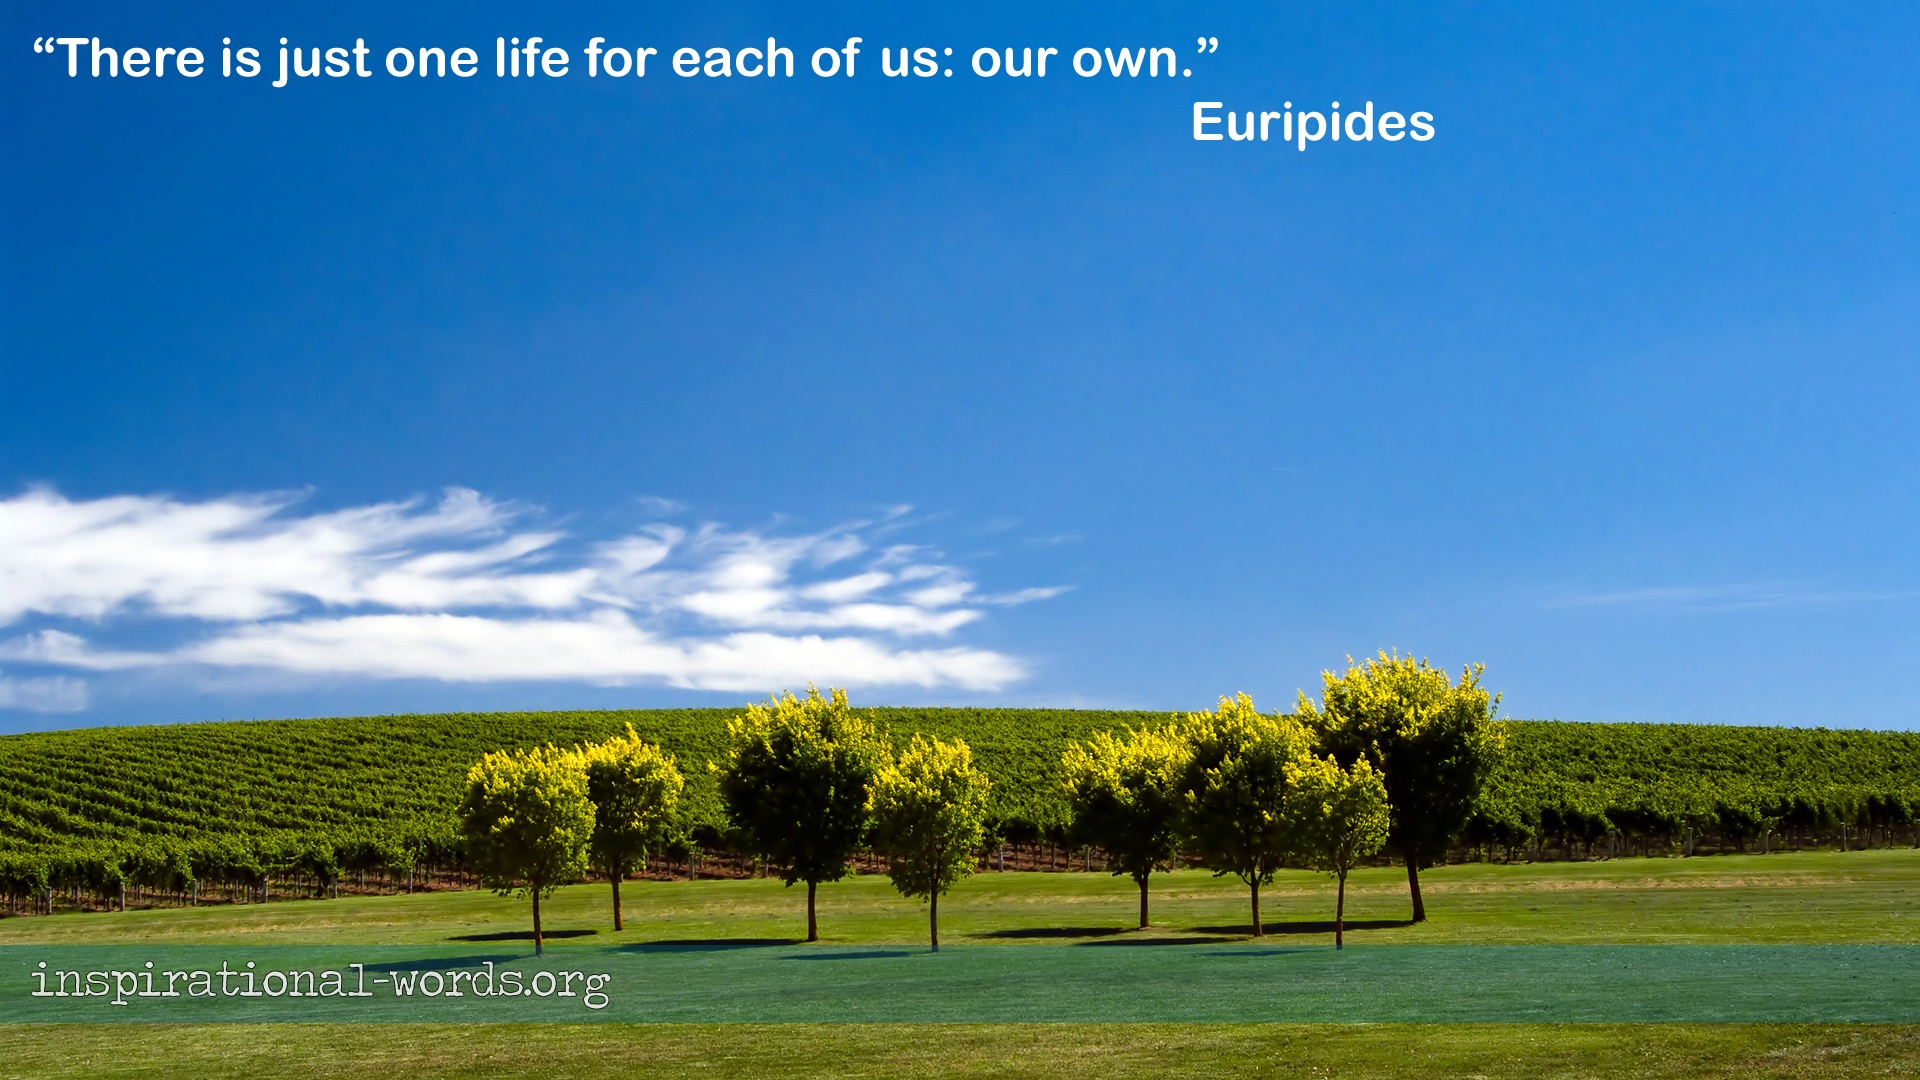 Euripides inspirational wallpaper